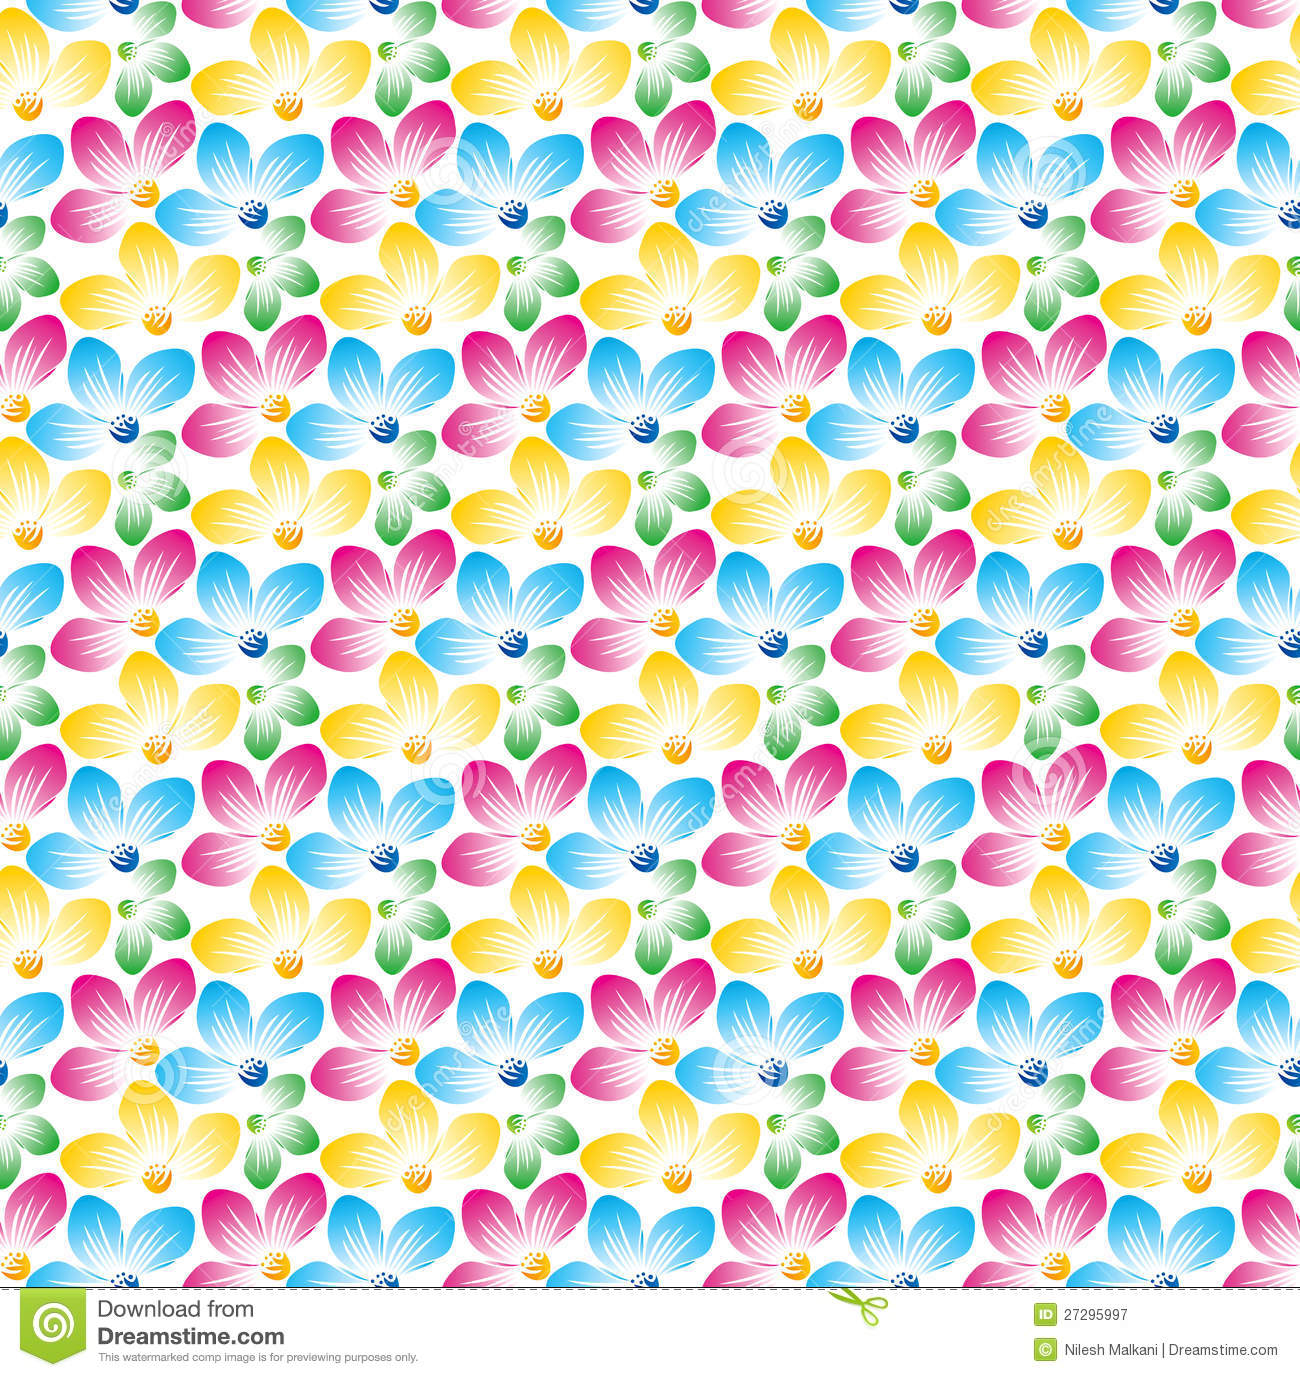 Fancy Wallpaper Seamless Fancy Wallpaper And Background Royalty Free Stock Photo